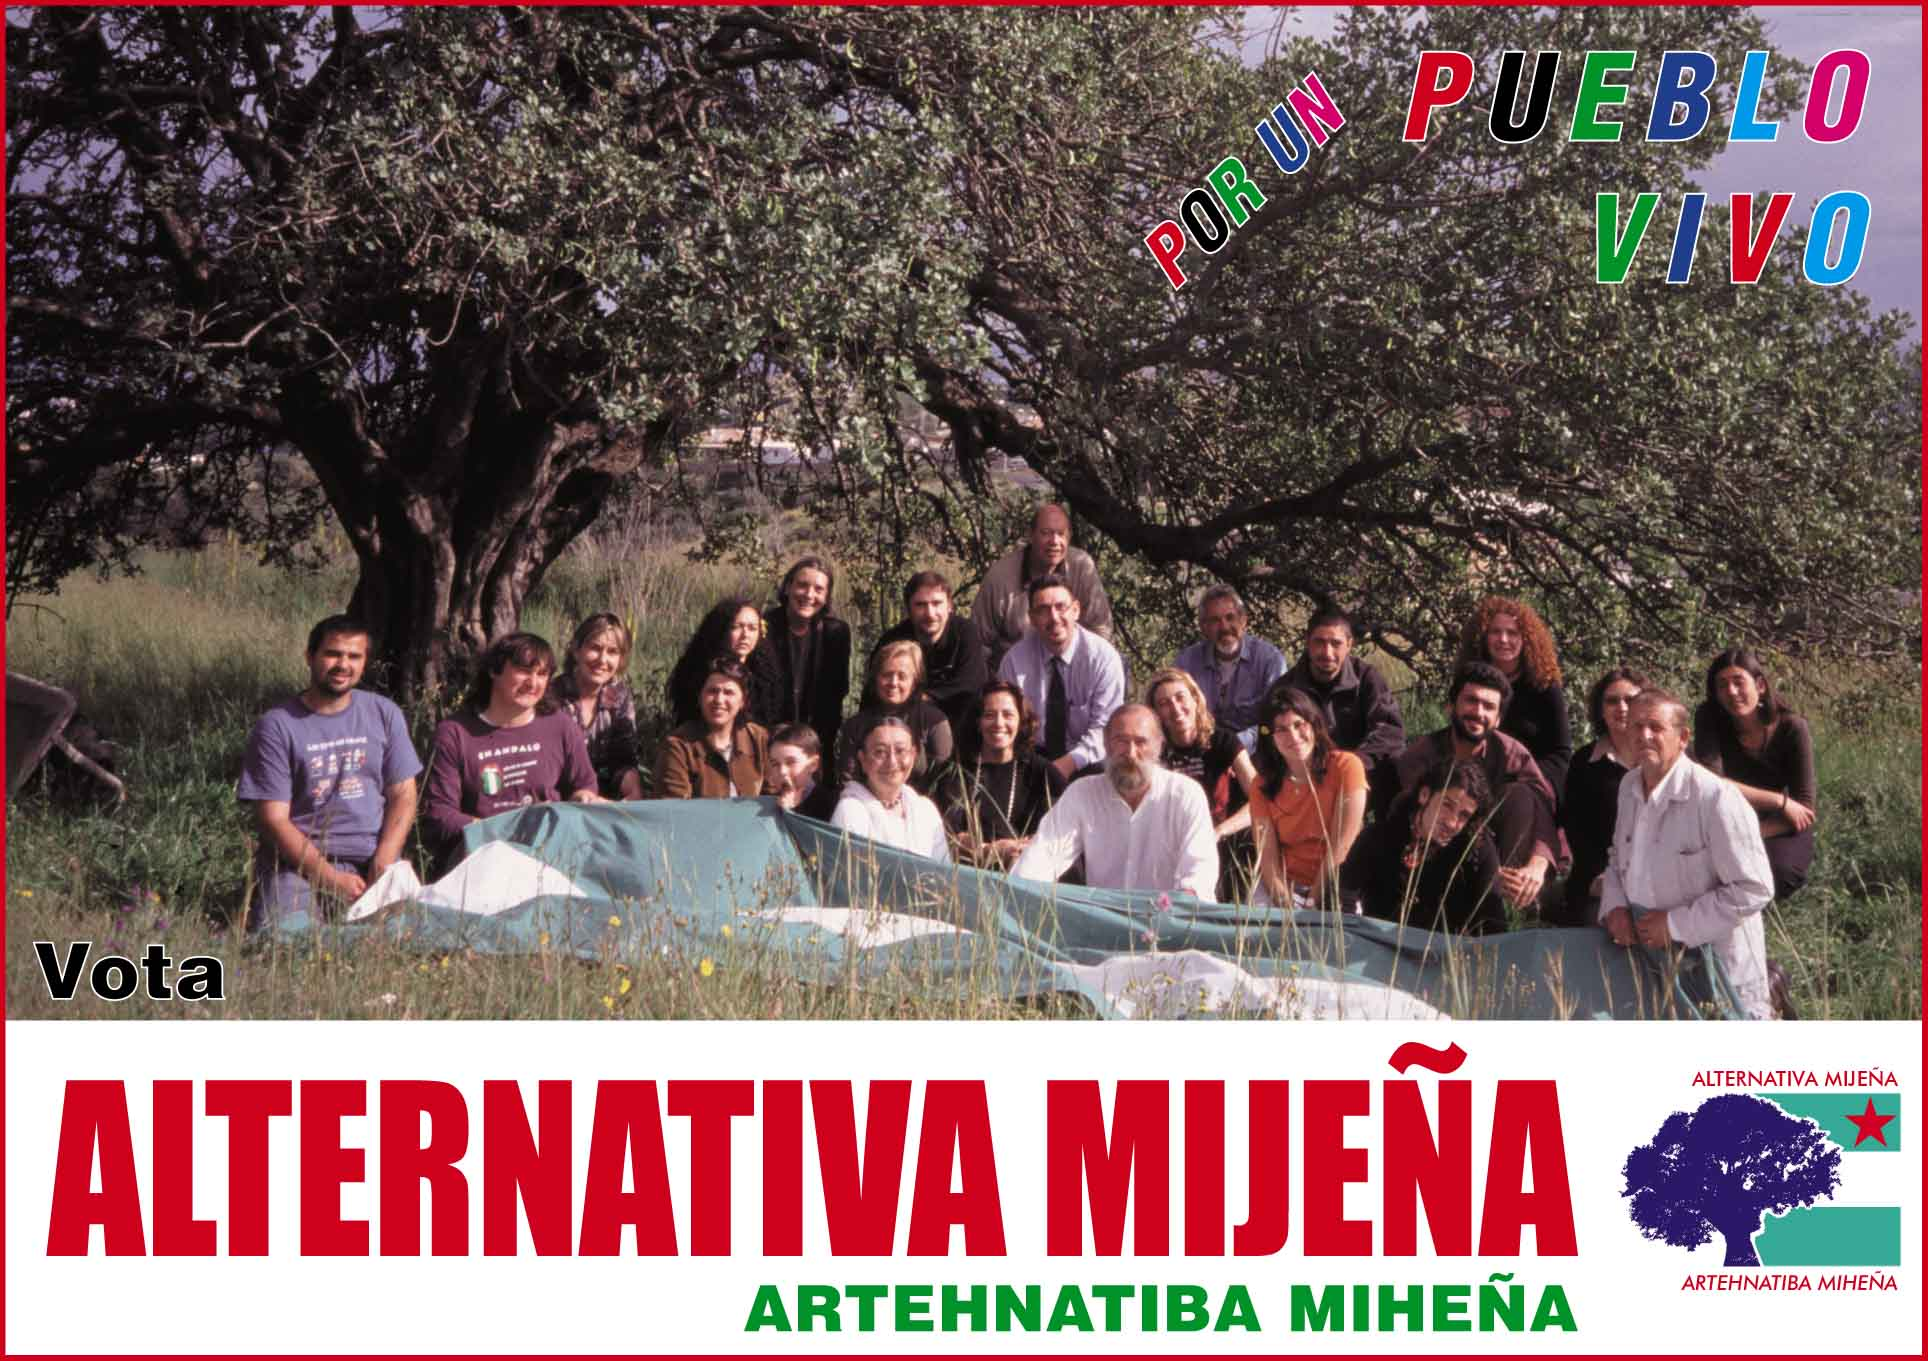 Cartel Alternativa Mijena Elecciones 2003.jpg